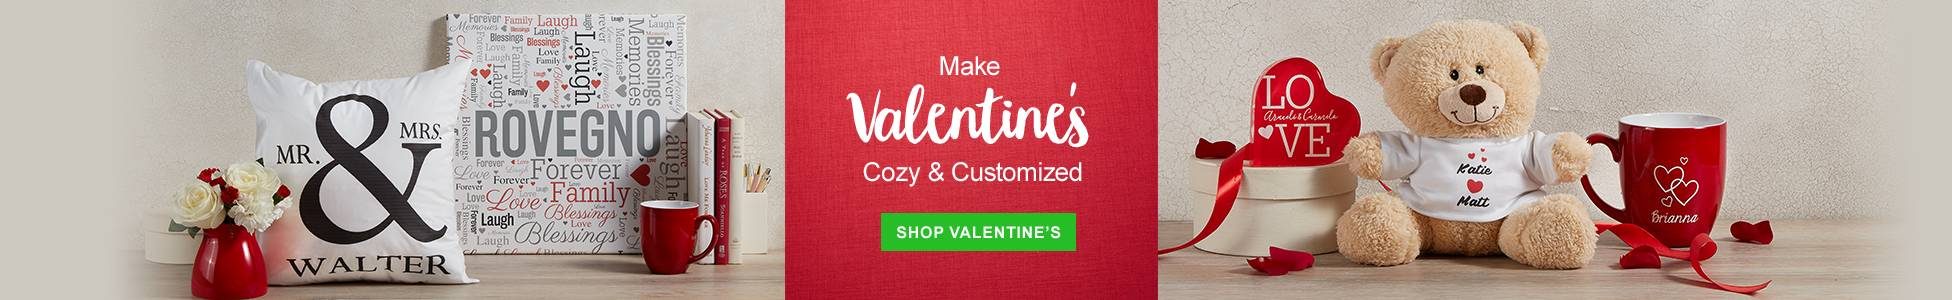 Make Valentines Cozy & Customized